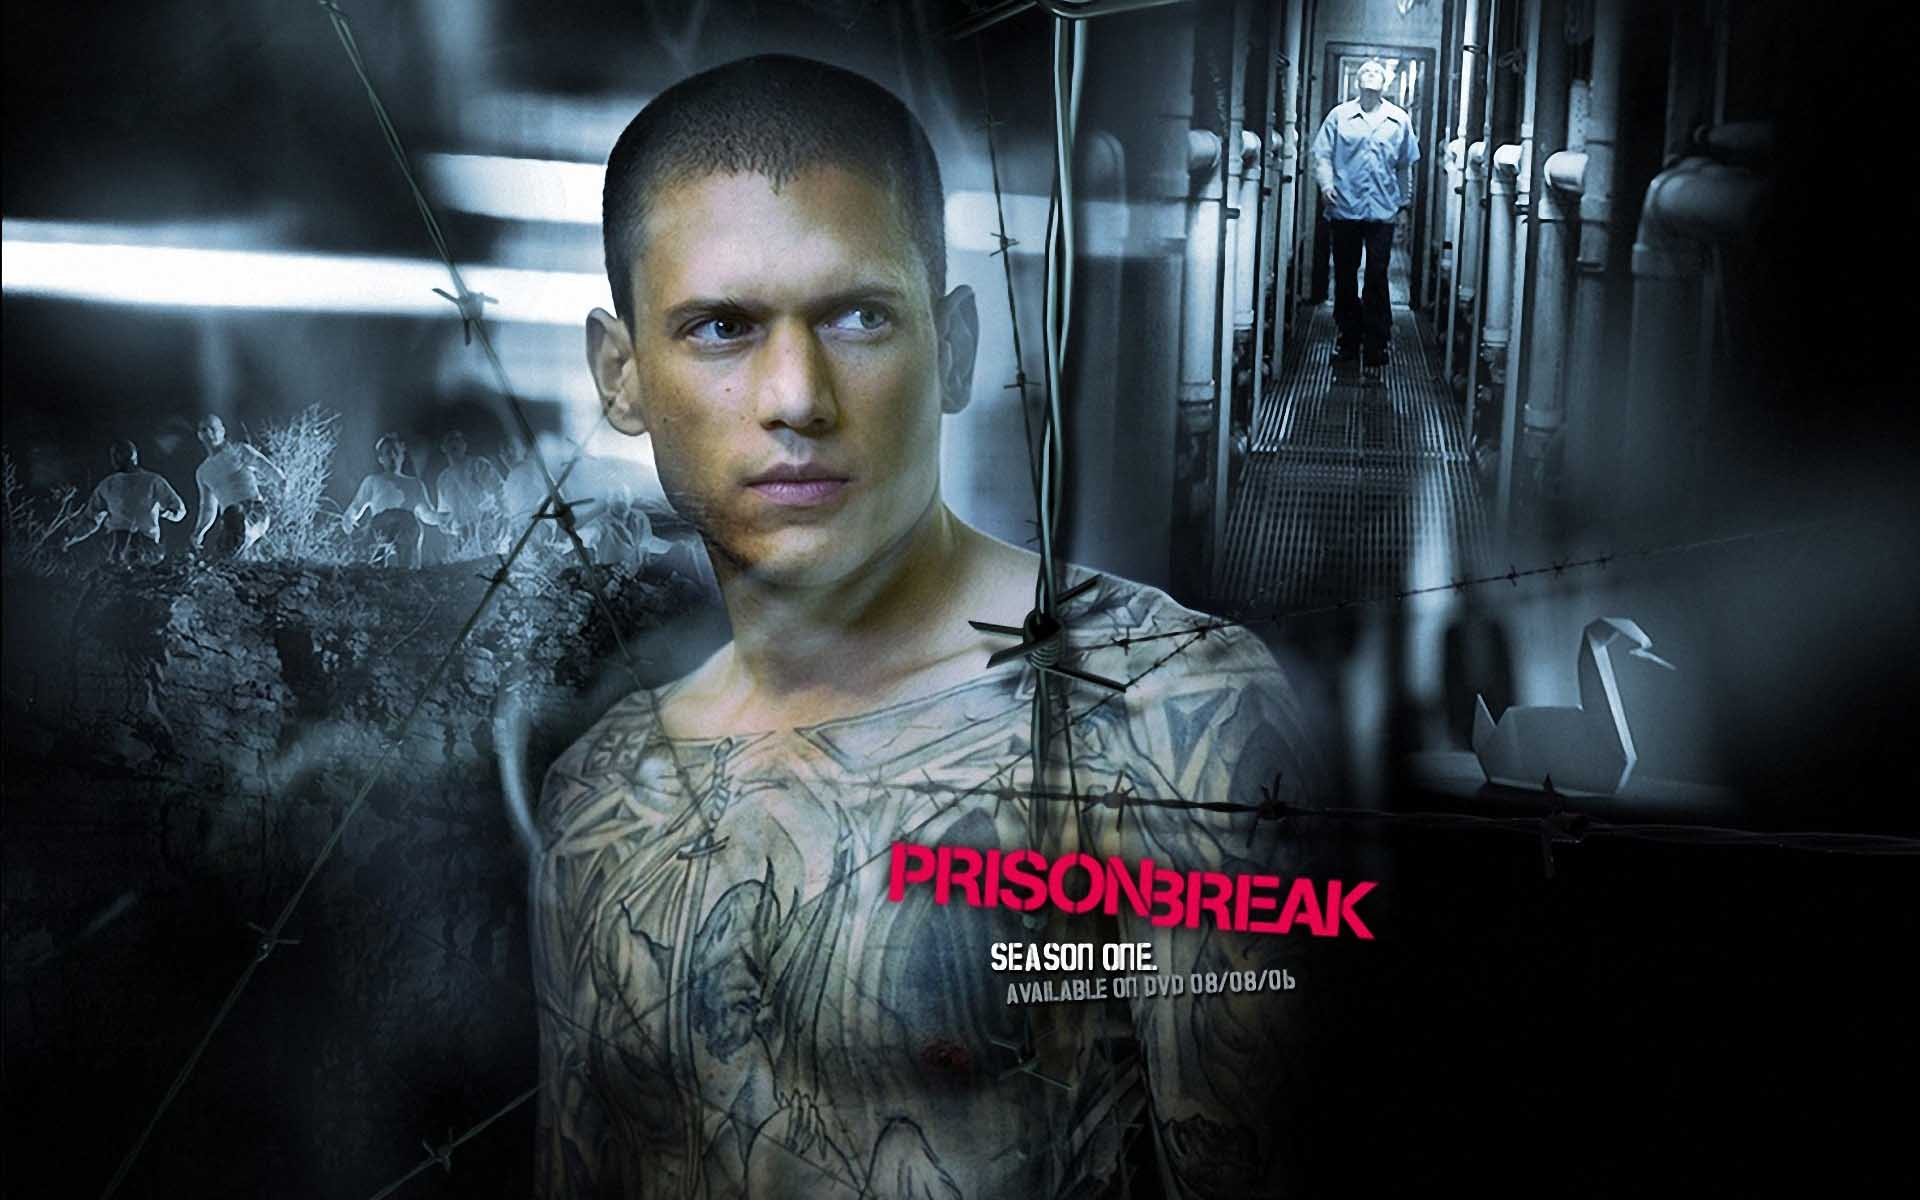 http://prison-break.red/wp-content/uploads/2016/01/19922a60344d75f939348eebcce751ca_large.jpg